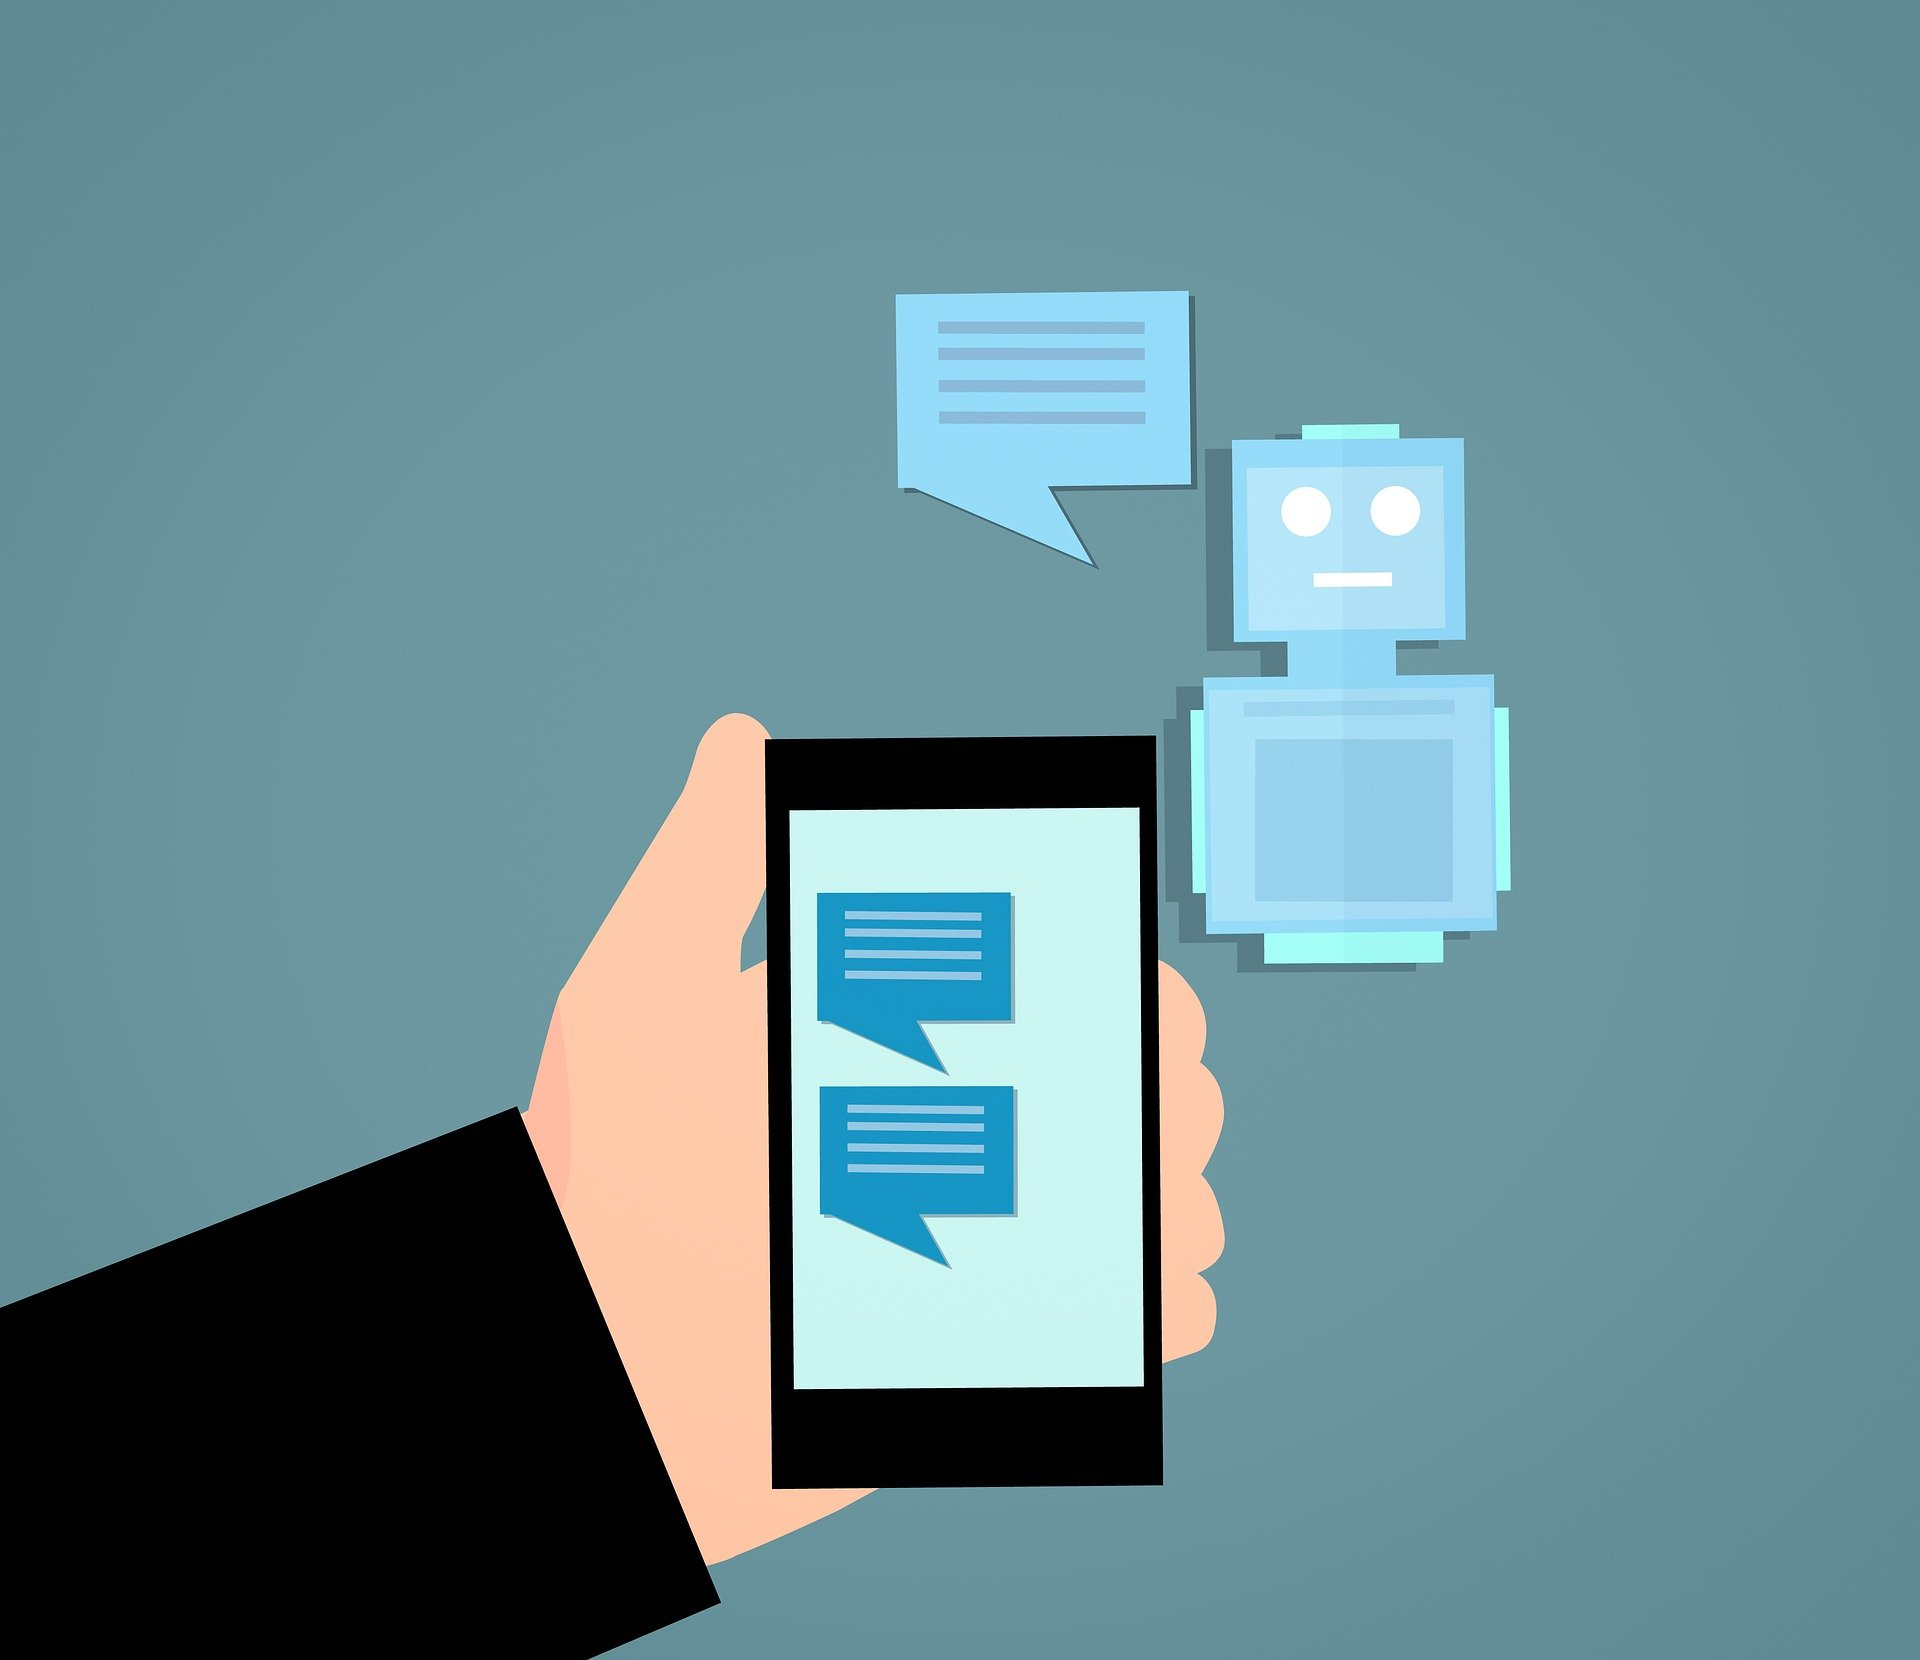 Chatbots Can Ease Medical Providers' Burden, Offer Guidance to Those with COVID-19 Symptoms